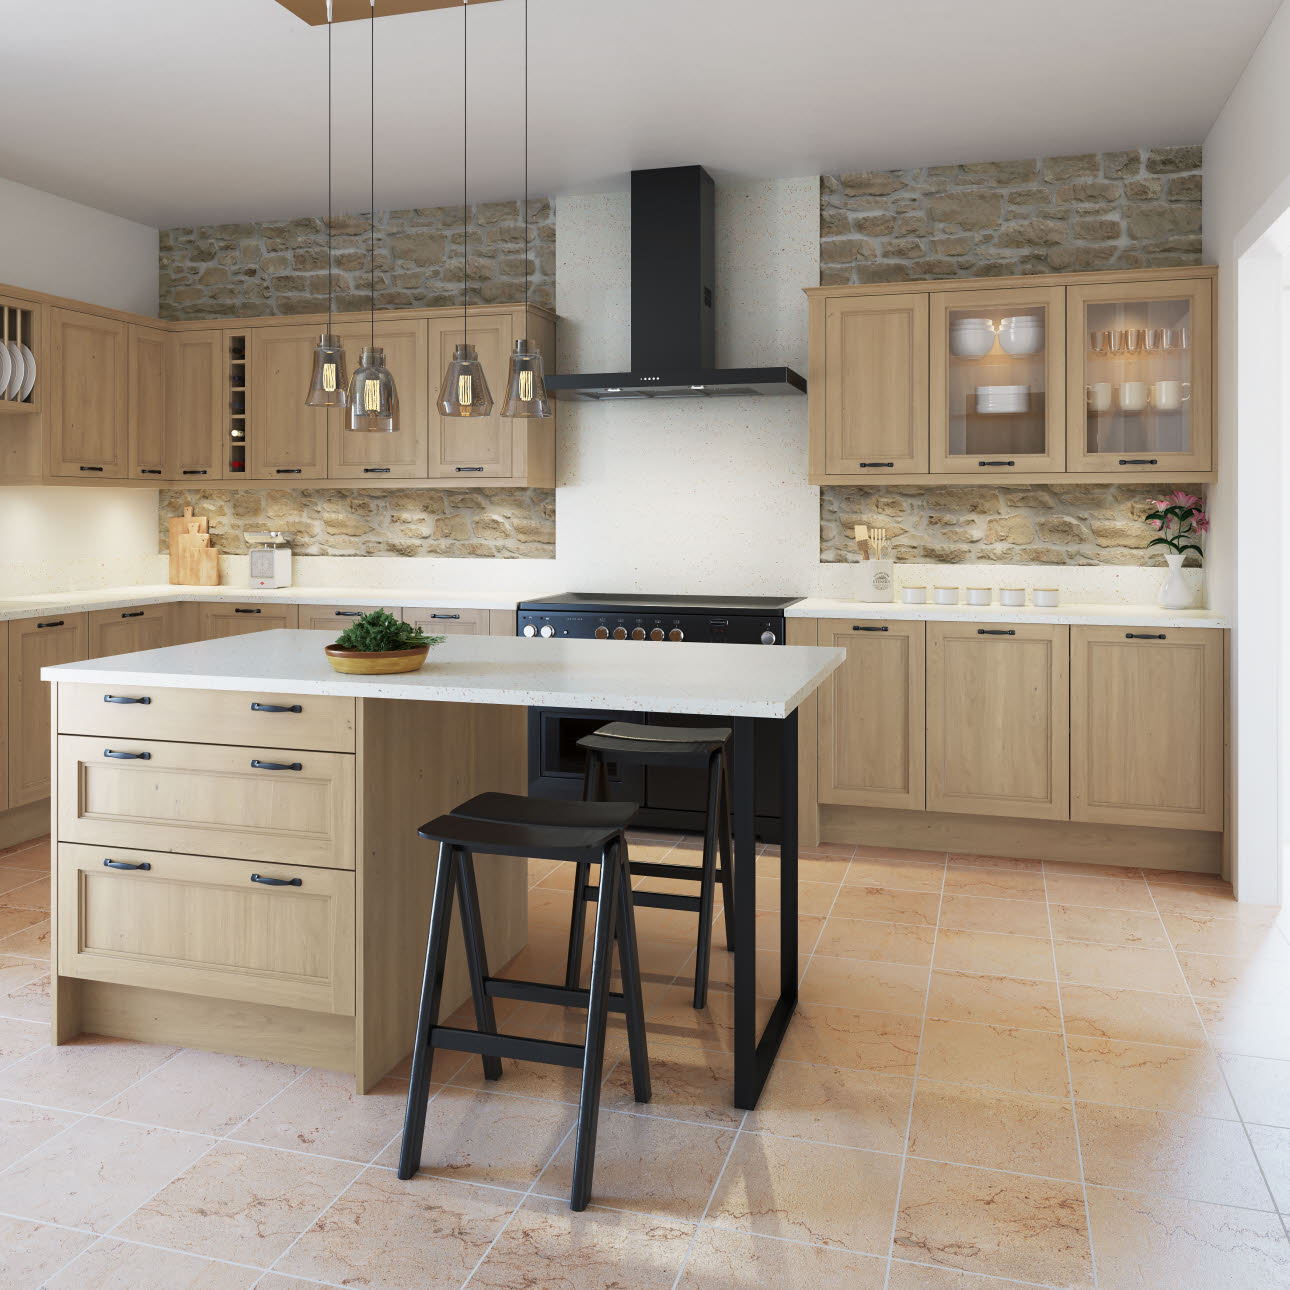 Integra Alpine Graphite Kitchen Style Kitchen Ranges